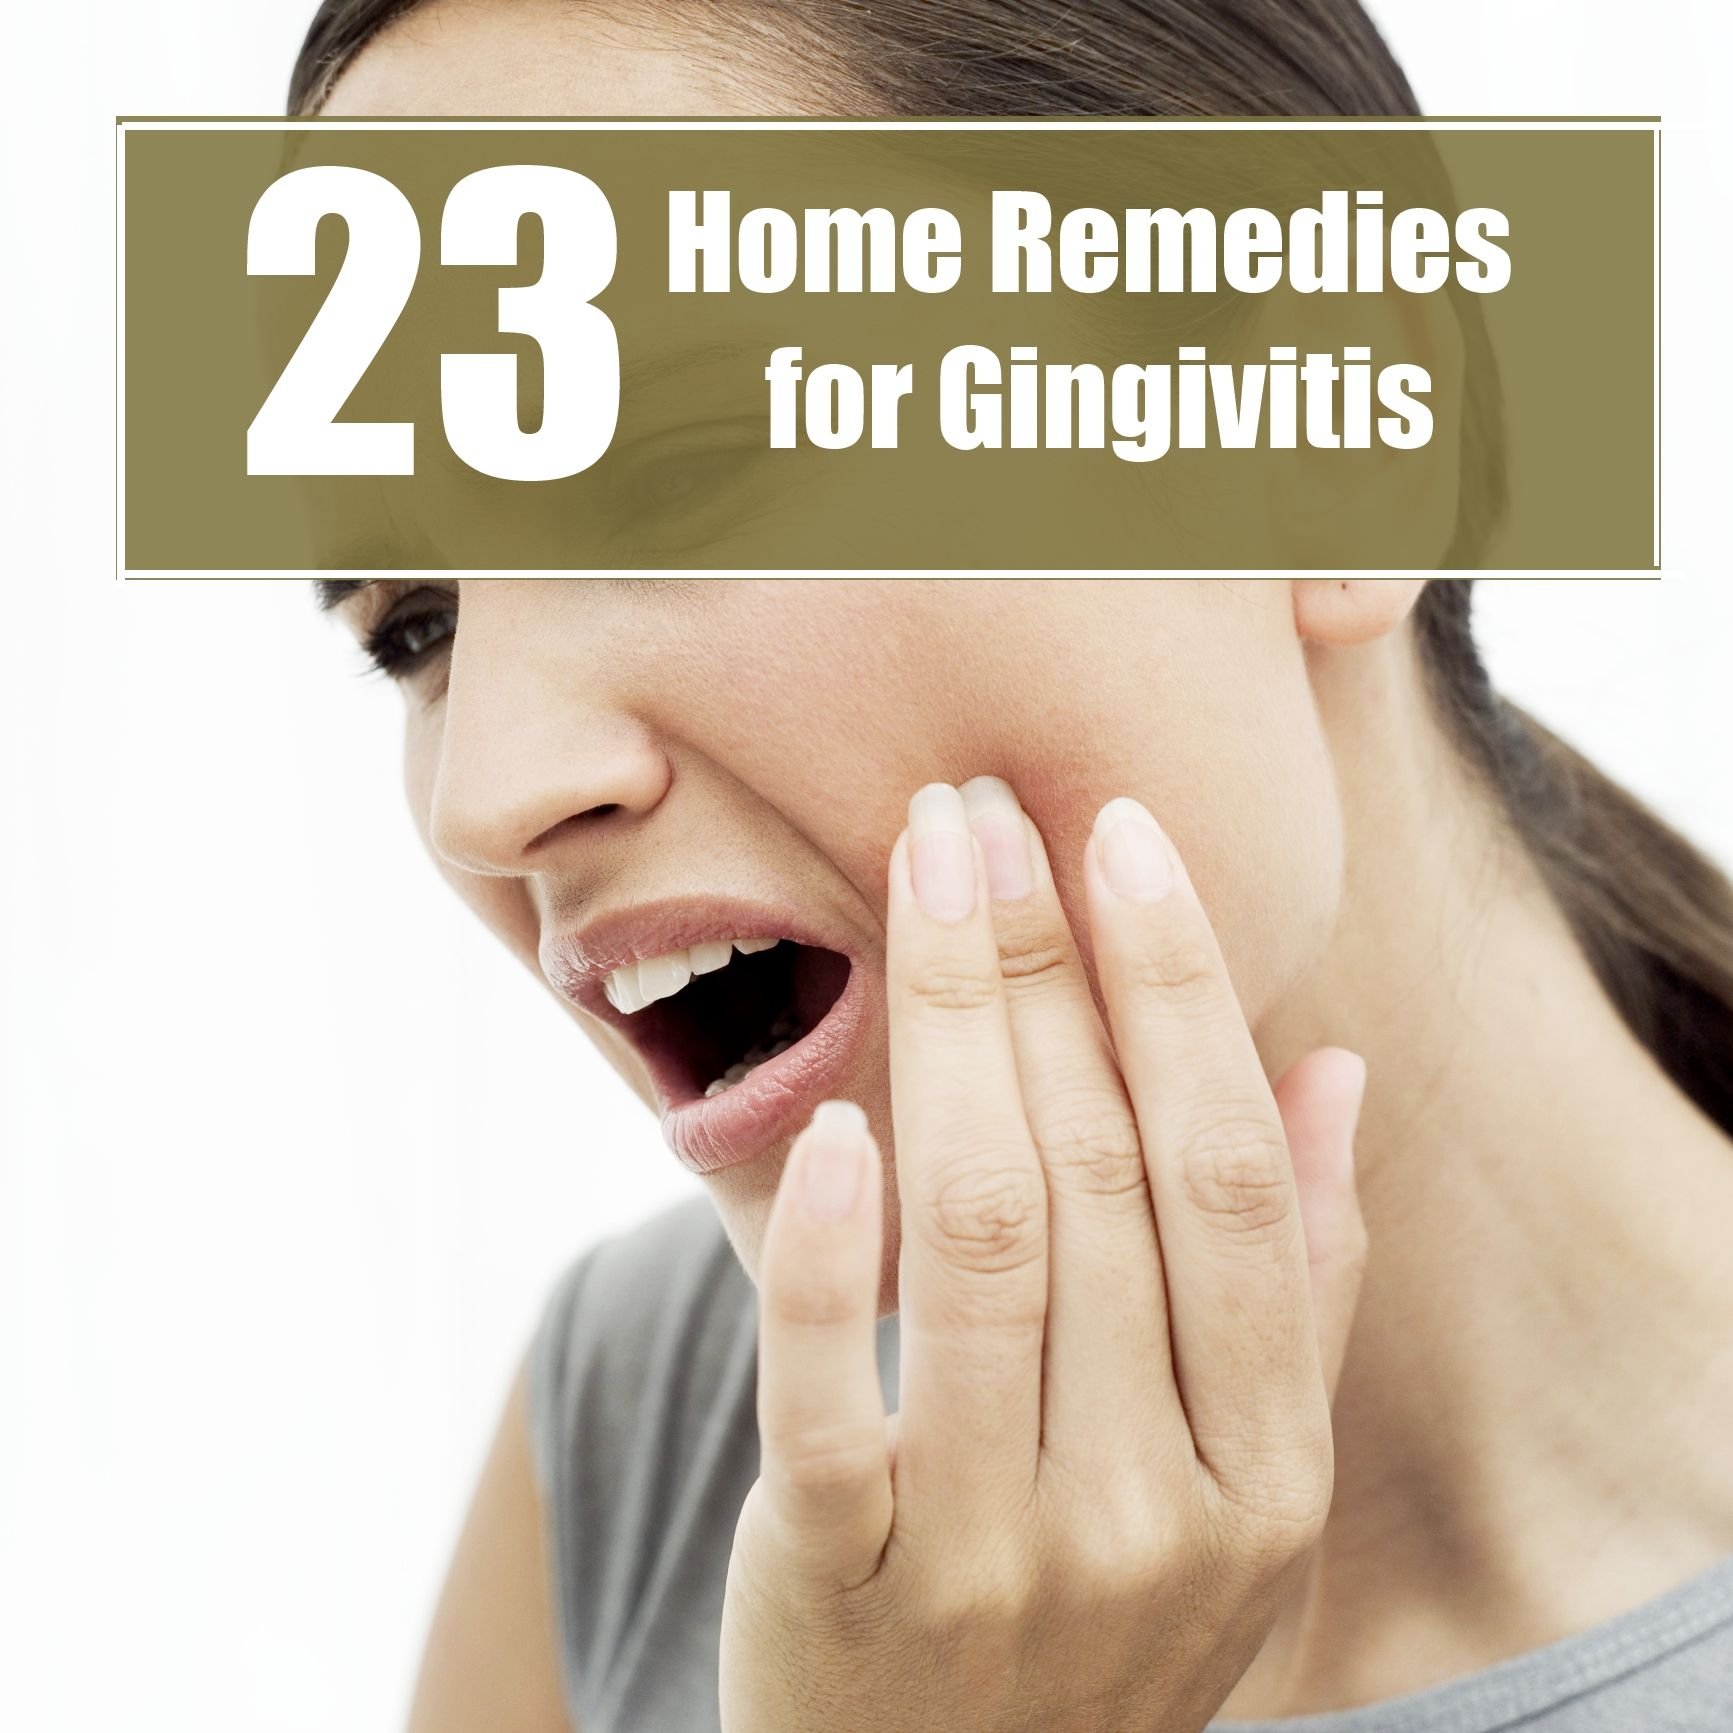 Home Remedies for Gingivitis  Home Remedies  Pinterest